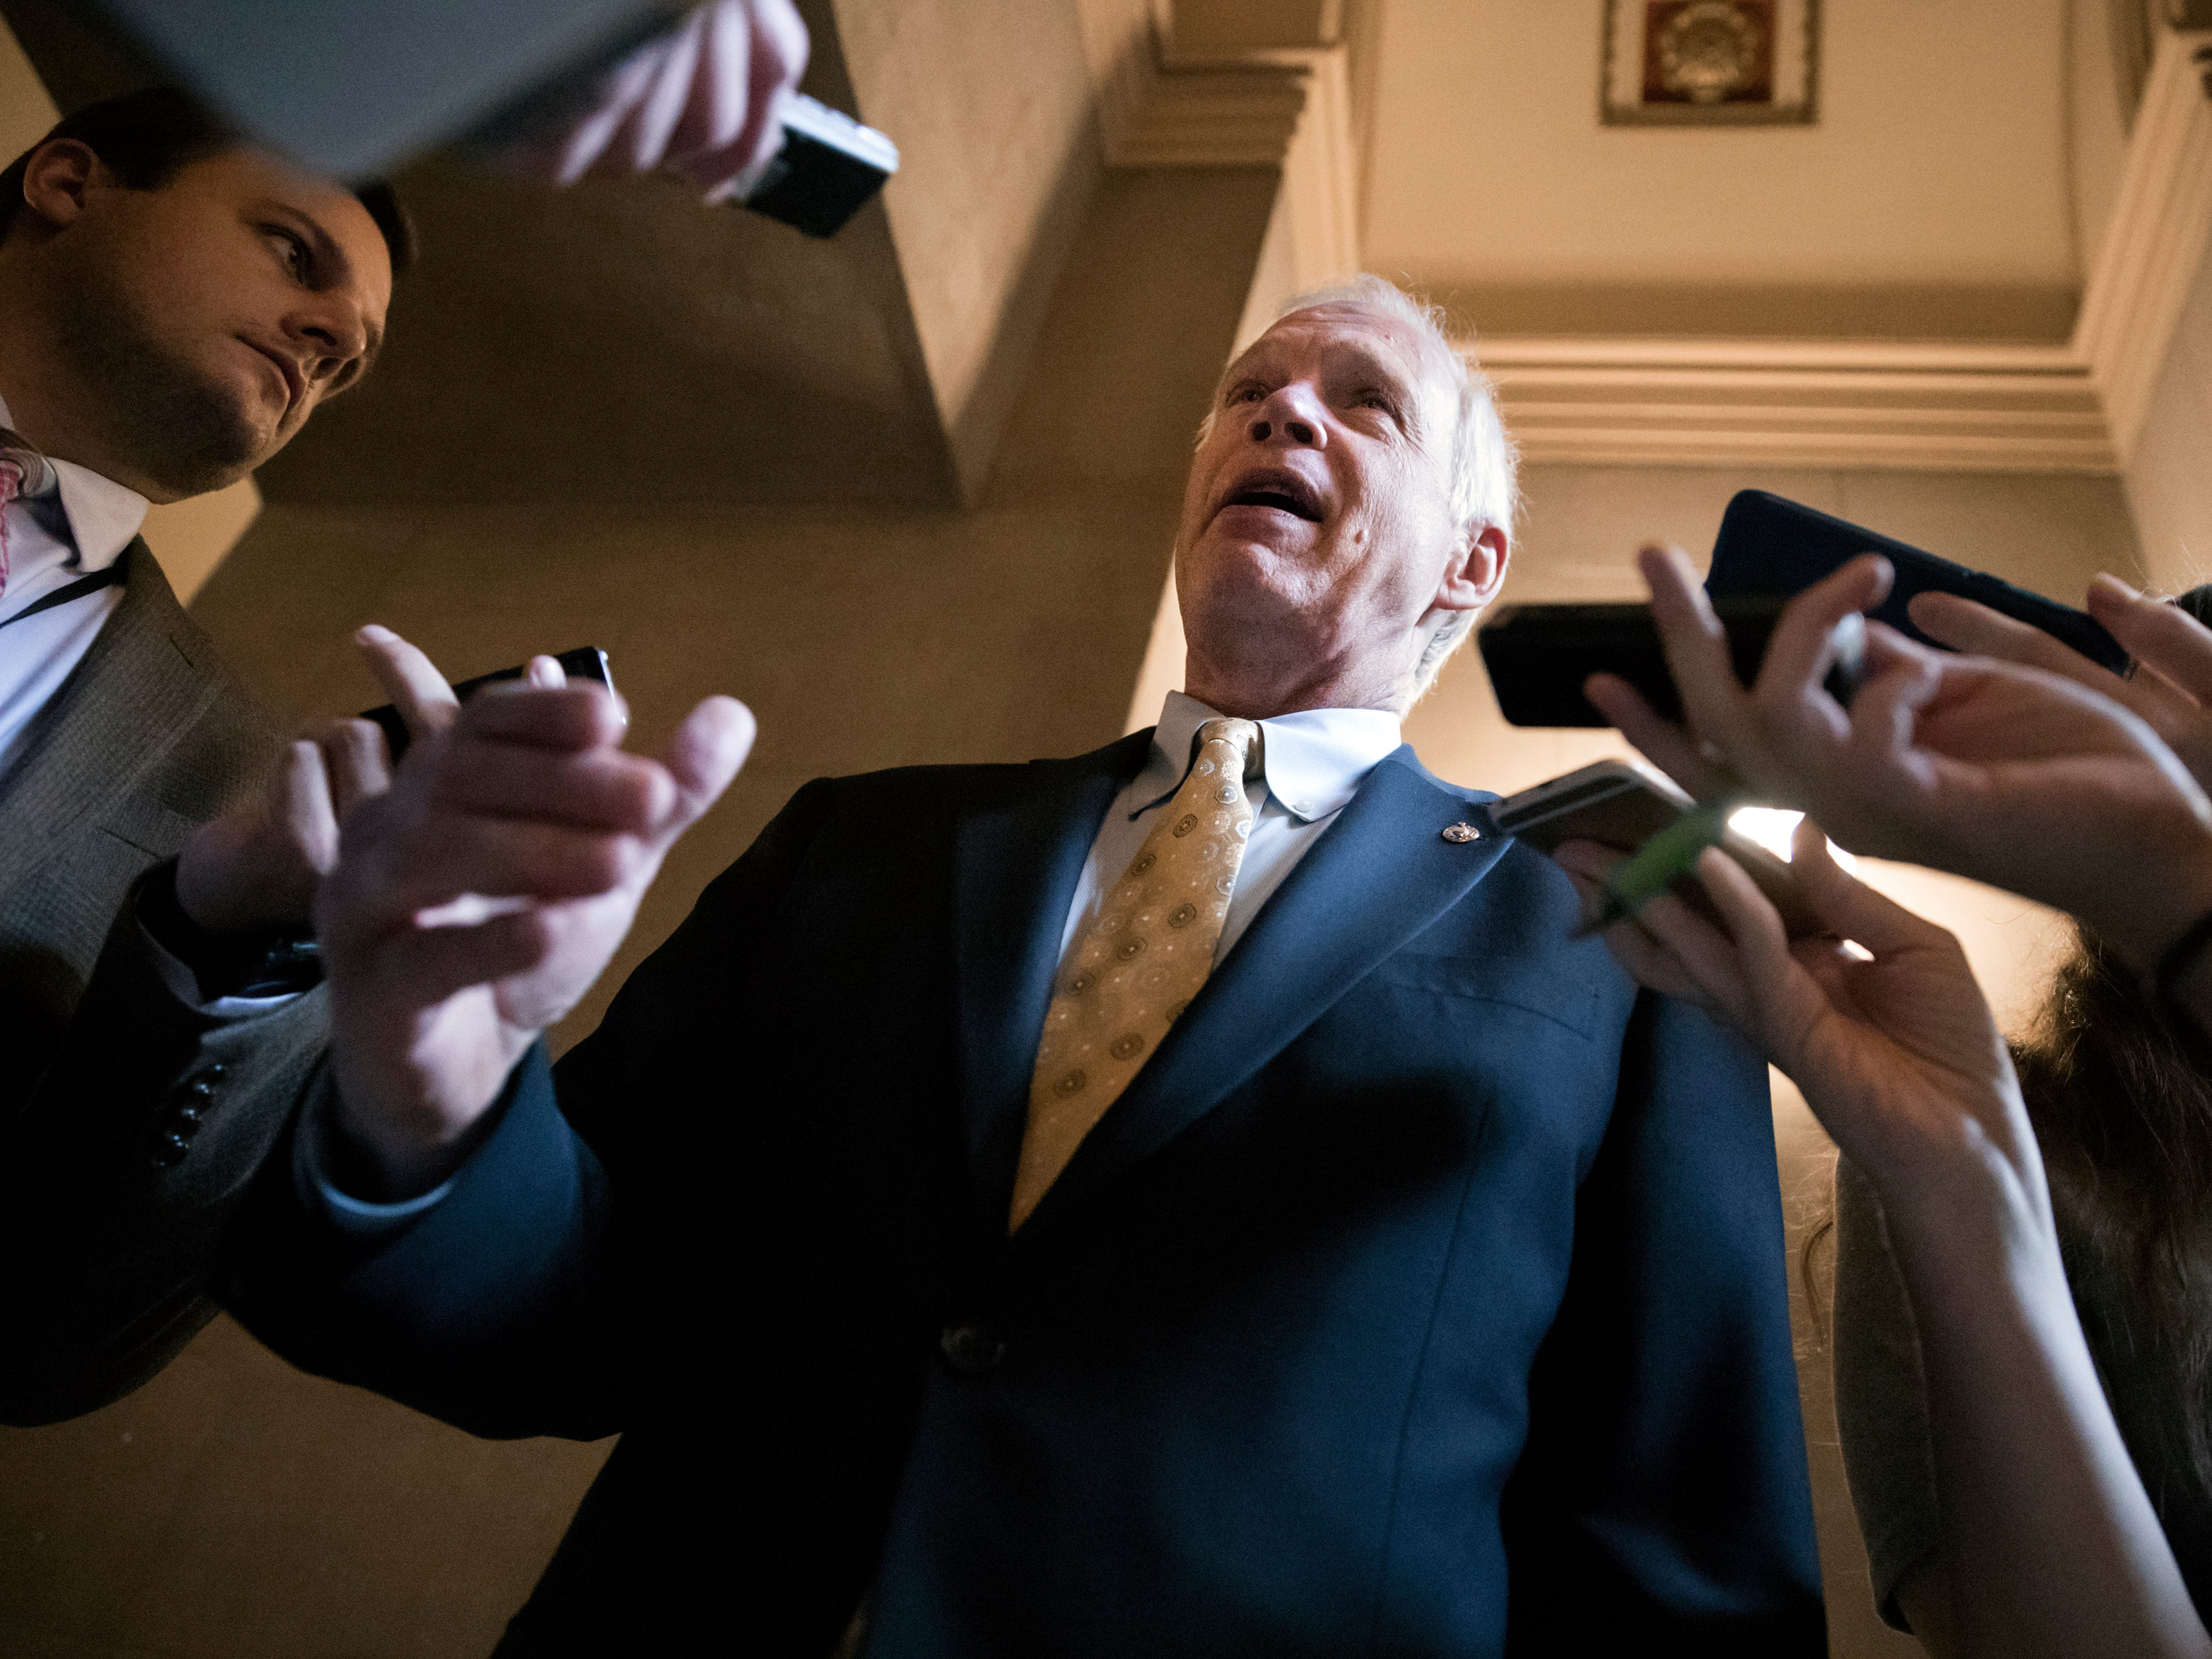 Reporters get an update from Sen. Ron Johnson, R-Wis., a member of the Senate Budget Committee, as Republican senators gather to meet with Majority Leader Mitch McConnell, R-Ky., on the GOP effort to overhaul the tax code, on Capitol Hill.